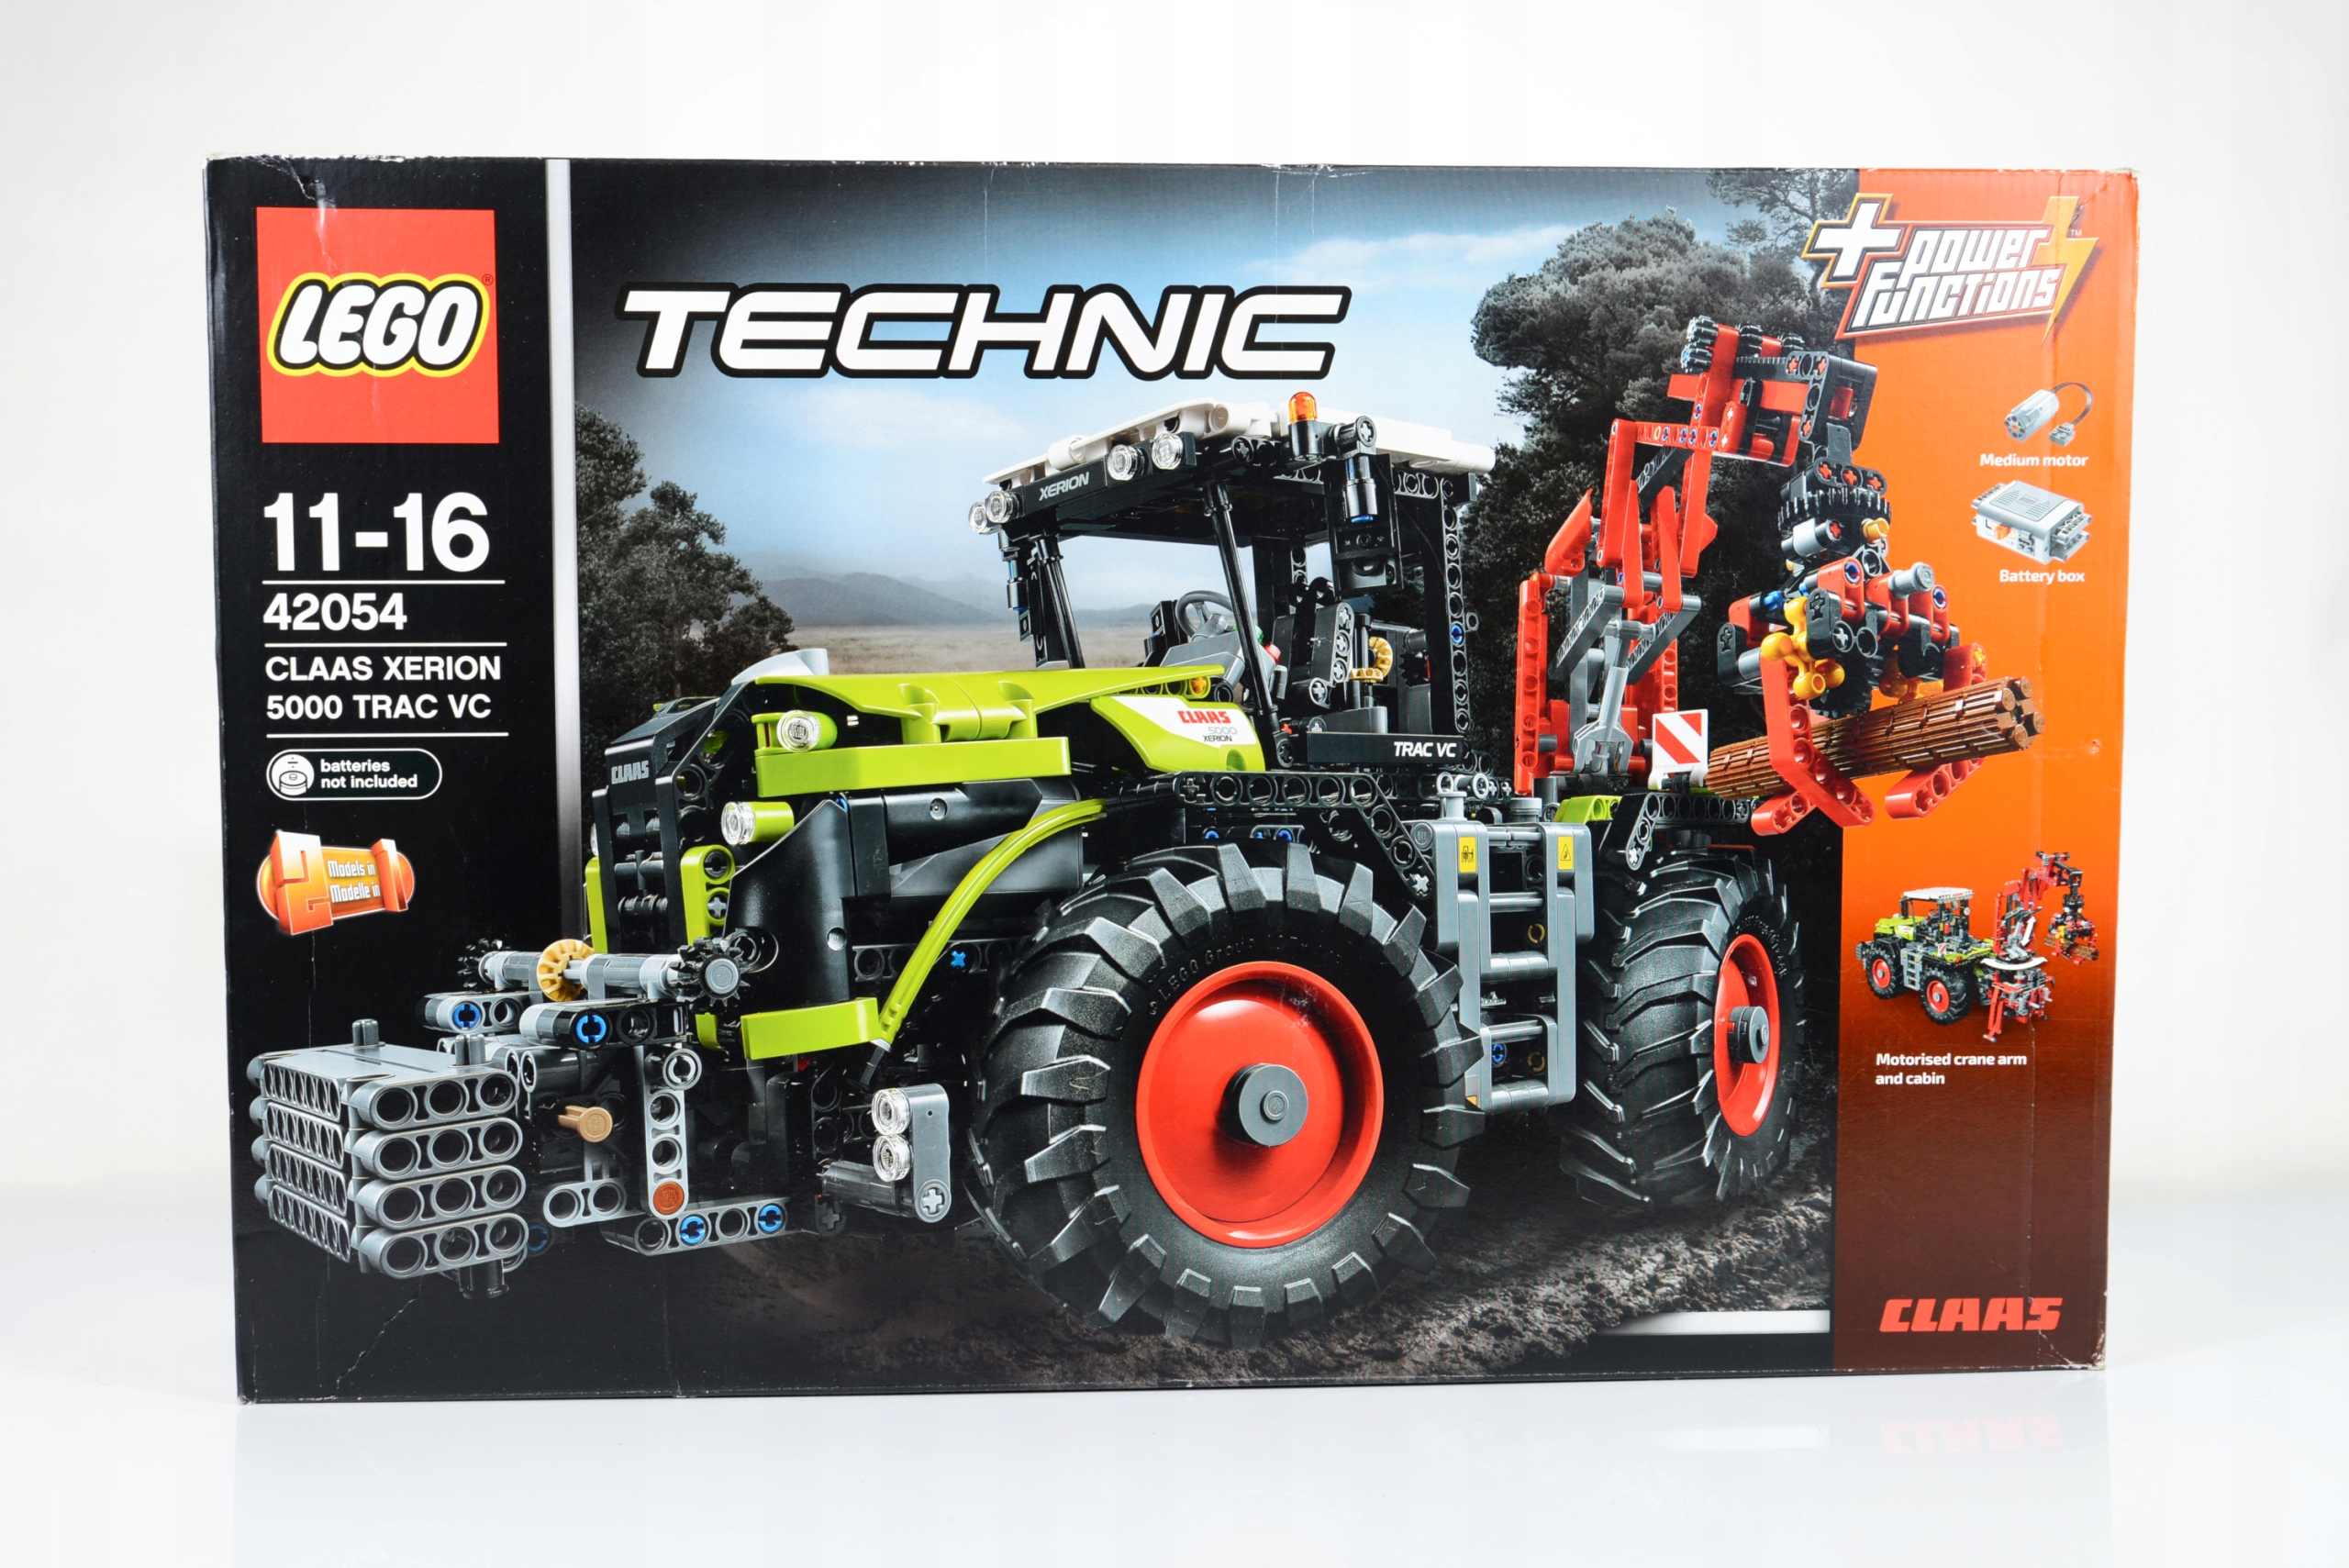 Lego Tecnic 42054 CLAAS XERION 5000 TRAC VC 2016